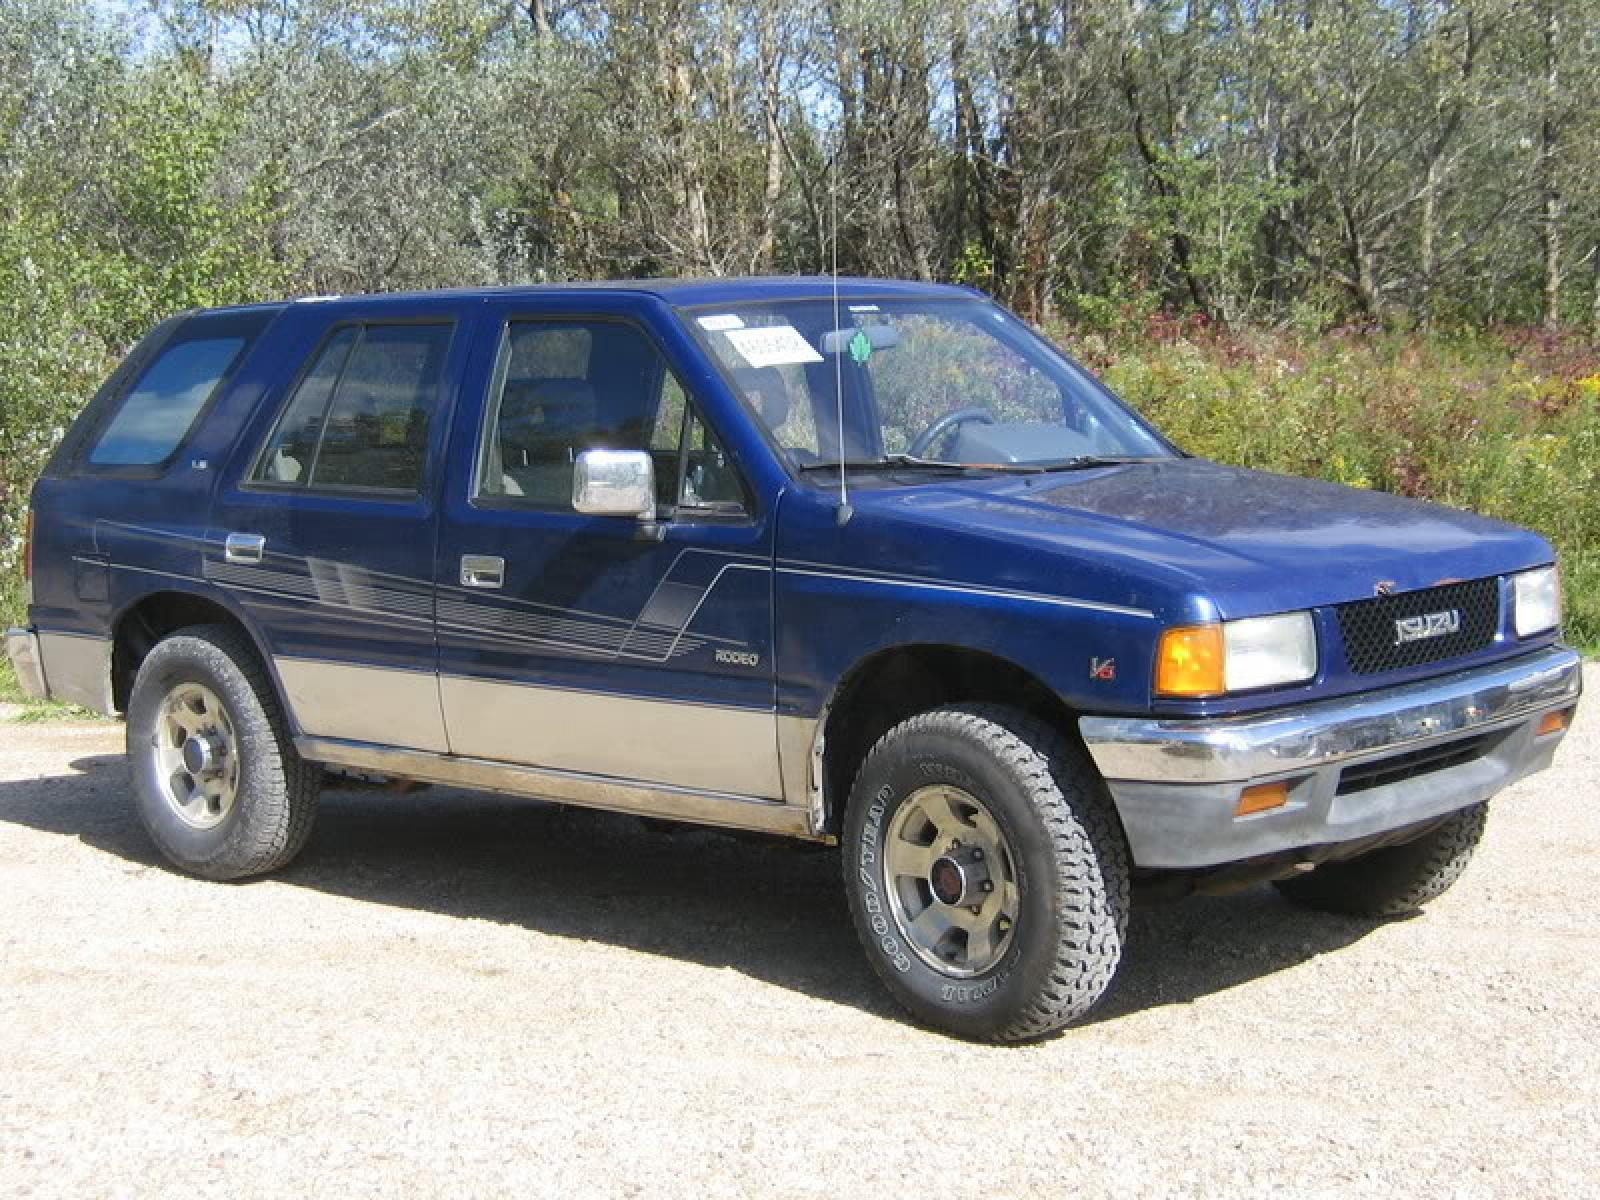 1991 isuzu rodeo information and photos zombiedrive